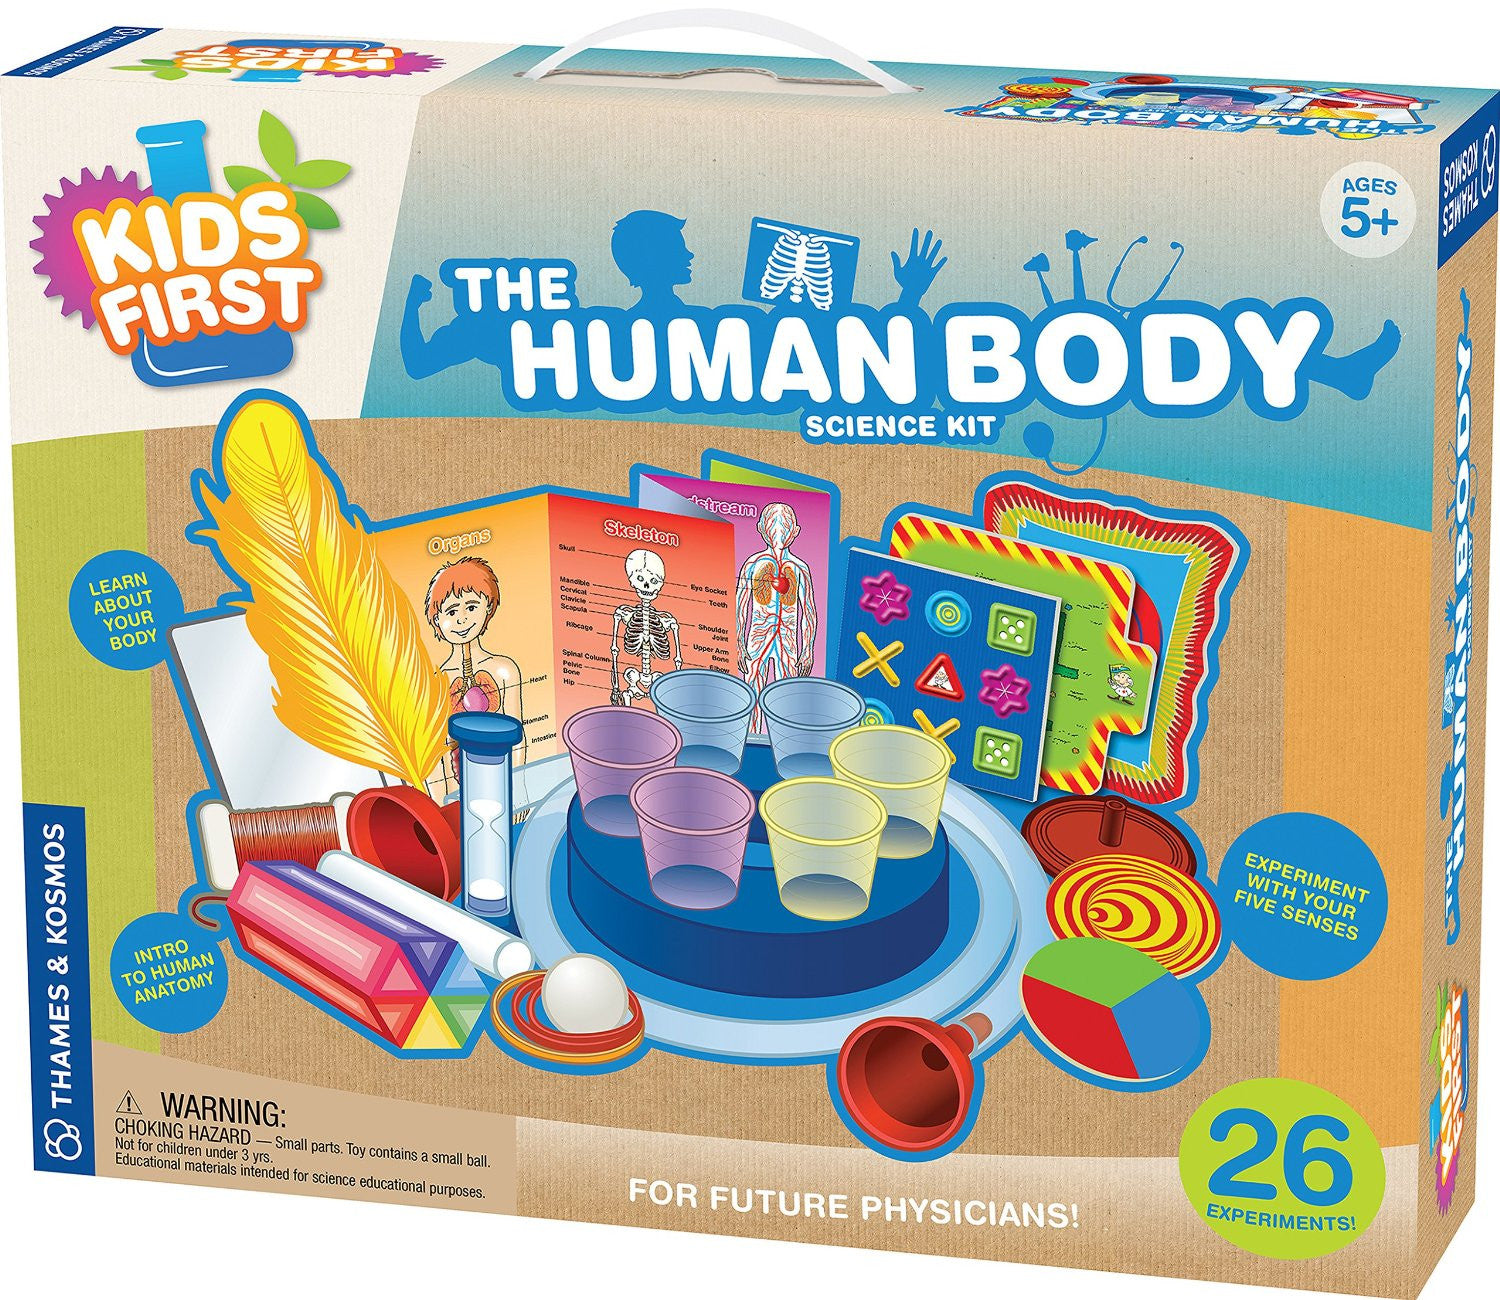 Human Body Kids First Level 2 Grades K-2